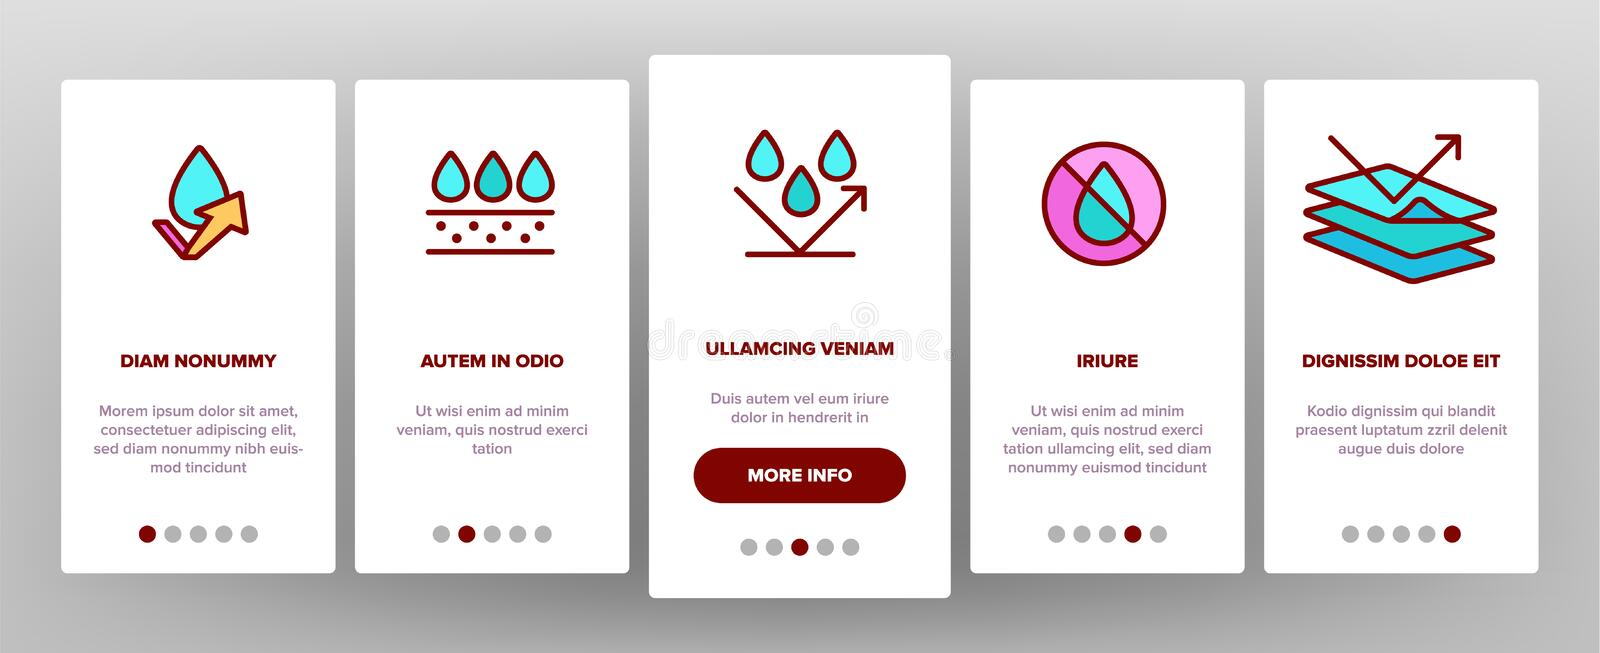 Color Waterproof, Water Resistant Materials Vector Onboarding. Mobile App Page Screen. Waterproof, Surface Protection. Hydrophobic Fabric Pictograms Collection stock illustration